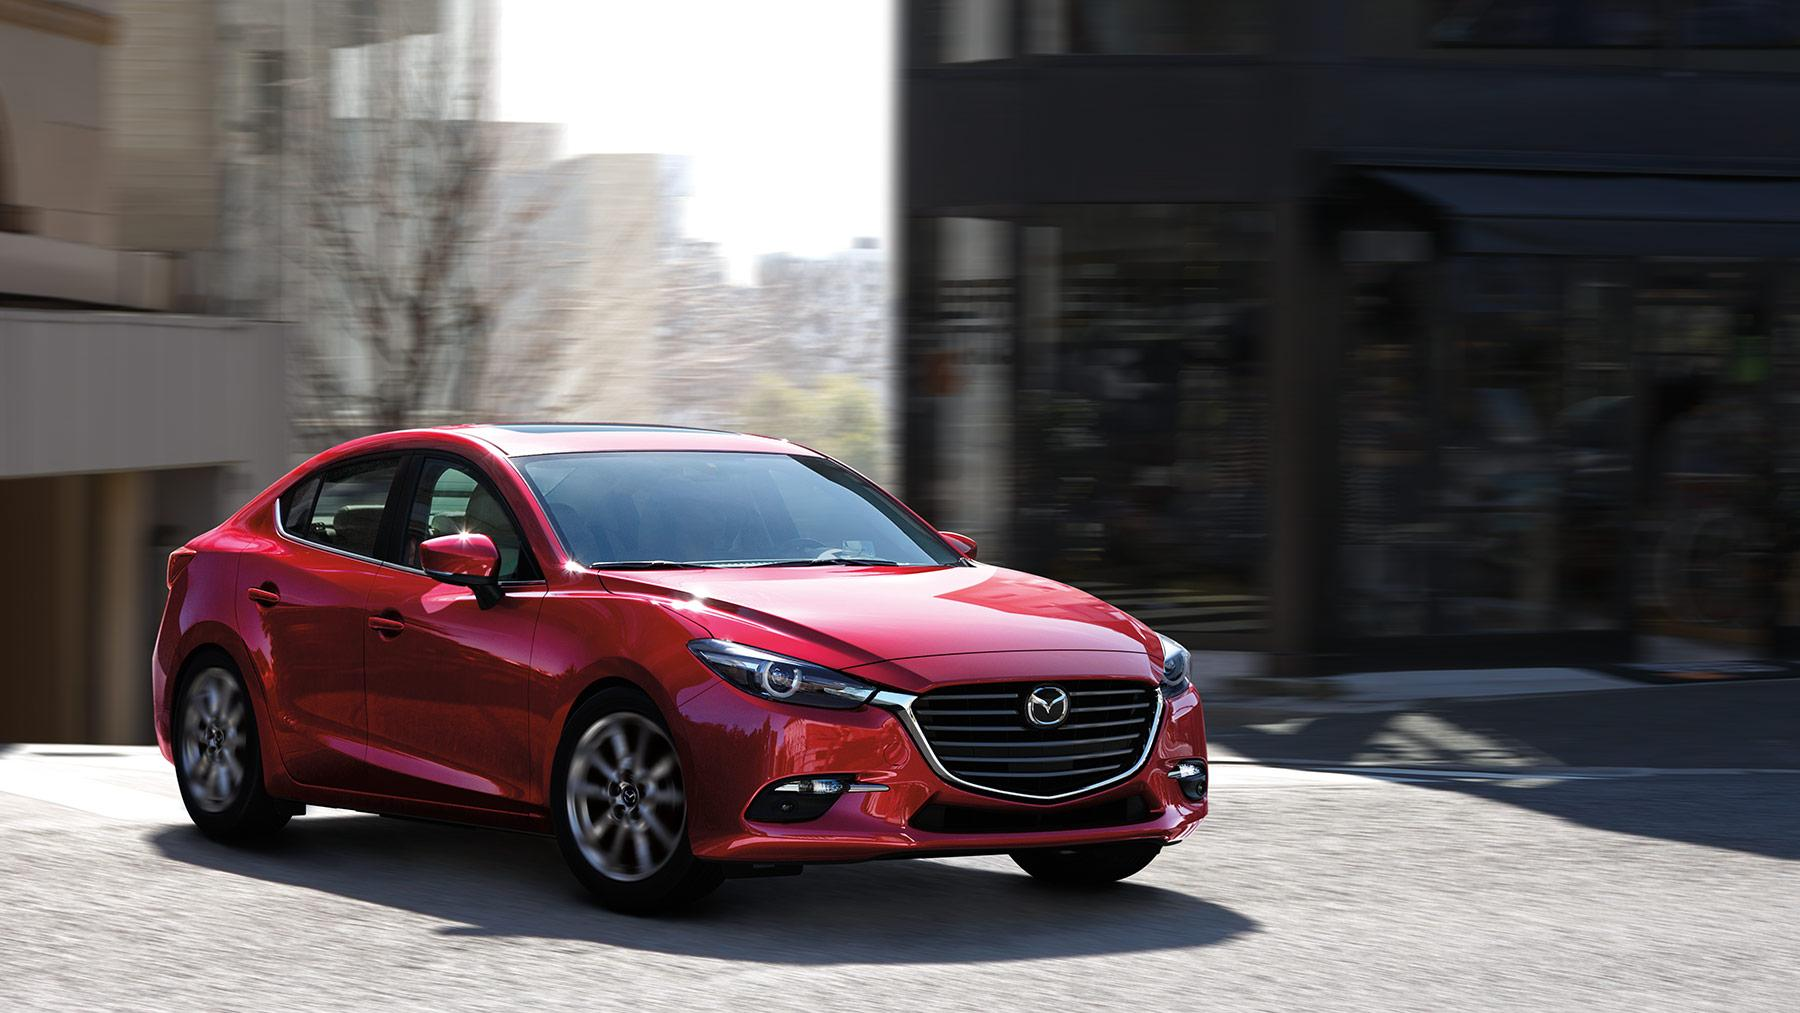 2019 Mazda 3 Sedan compact car hd wallpapers